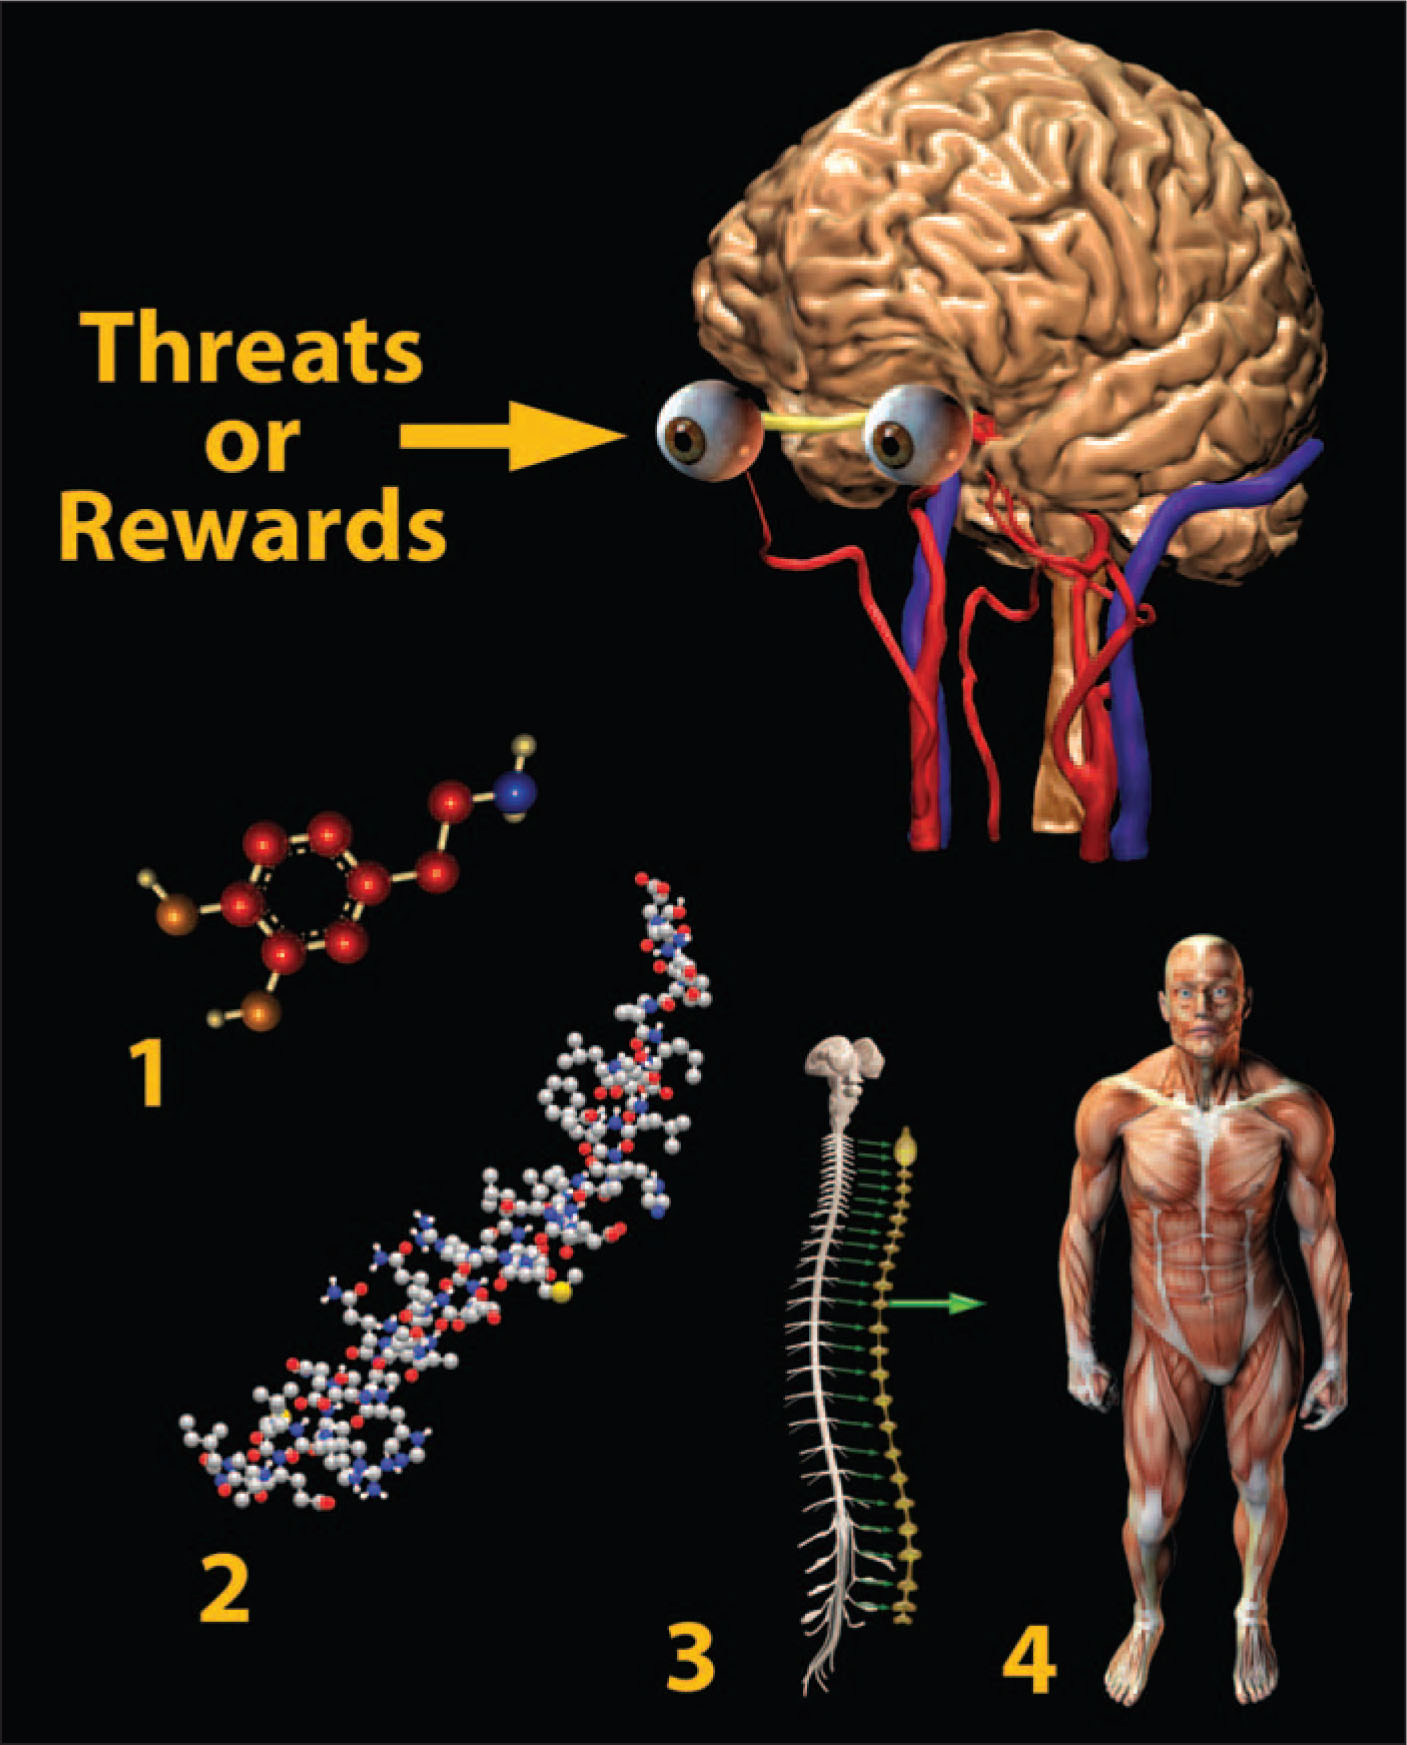 Summary of General Responses to Stimuli Whose Potential Threat or Value Merits a Response. The Brain Reacts by Releasing Regulatory Neurotransmitters, Which Affect Attention and Arousal Level. In Addition, the Autonomic Nervous System Is Activated, and Releasing Factors May Be Secreted to Prepare the Body for the Anticipated Challenge. Genetically Preprogrammed or Learned Action Sequences May Be Implemented Automatically as a Response to Certain Stimuli. All Illustrations are Copyright George I. Viamontes, 2009; Copyright Is Transferred to the Publisher; Used with Permission. A Note from the Editors: All Illustrations in This Article Have Been Created by George I. Viamontes, MD, PhD, for Specific Use in This Issue of Psychiatric Annals. Structural Data for the Molecules Used in the Figures Were Obtained from the Research Collaboratory for Structural Informatics Protein Data Bank (RSCB PDB).39